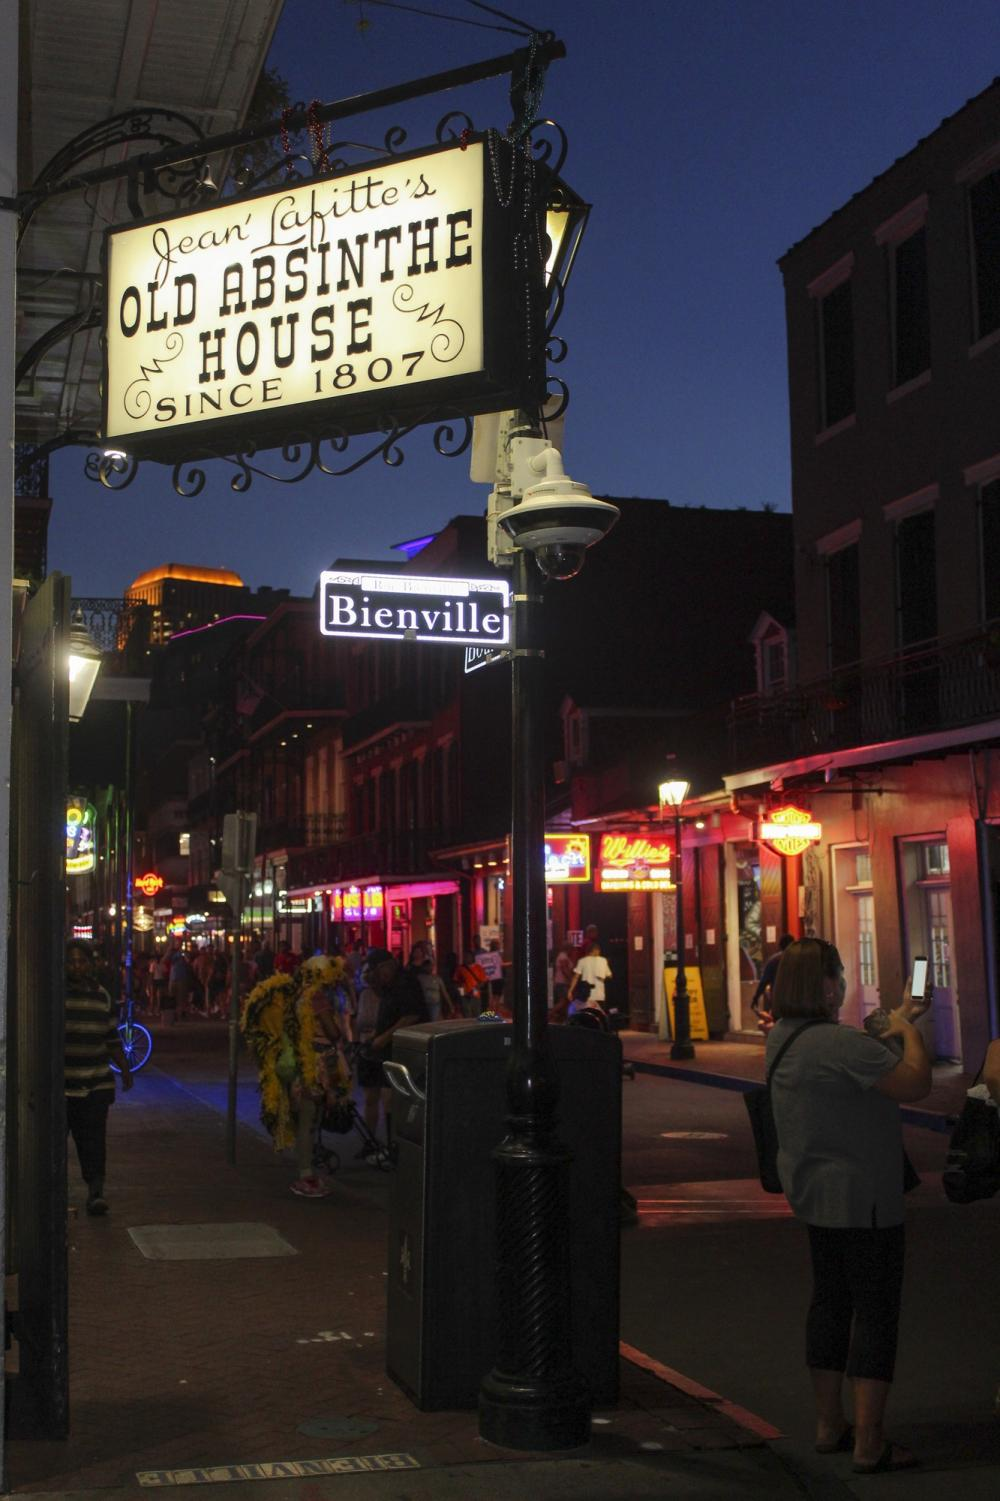 The outside of The Old Absinthe House bustles on the corner of Bienville Street and Bourbon Street on Sept. 10. The bar is among the oldest bars in the city. Photo credit: Gabriella Killett